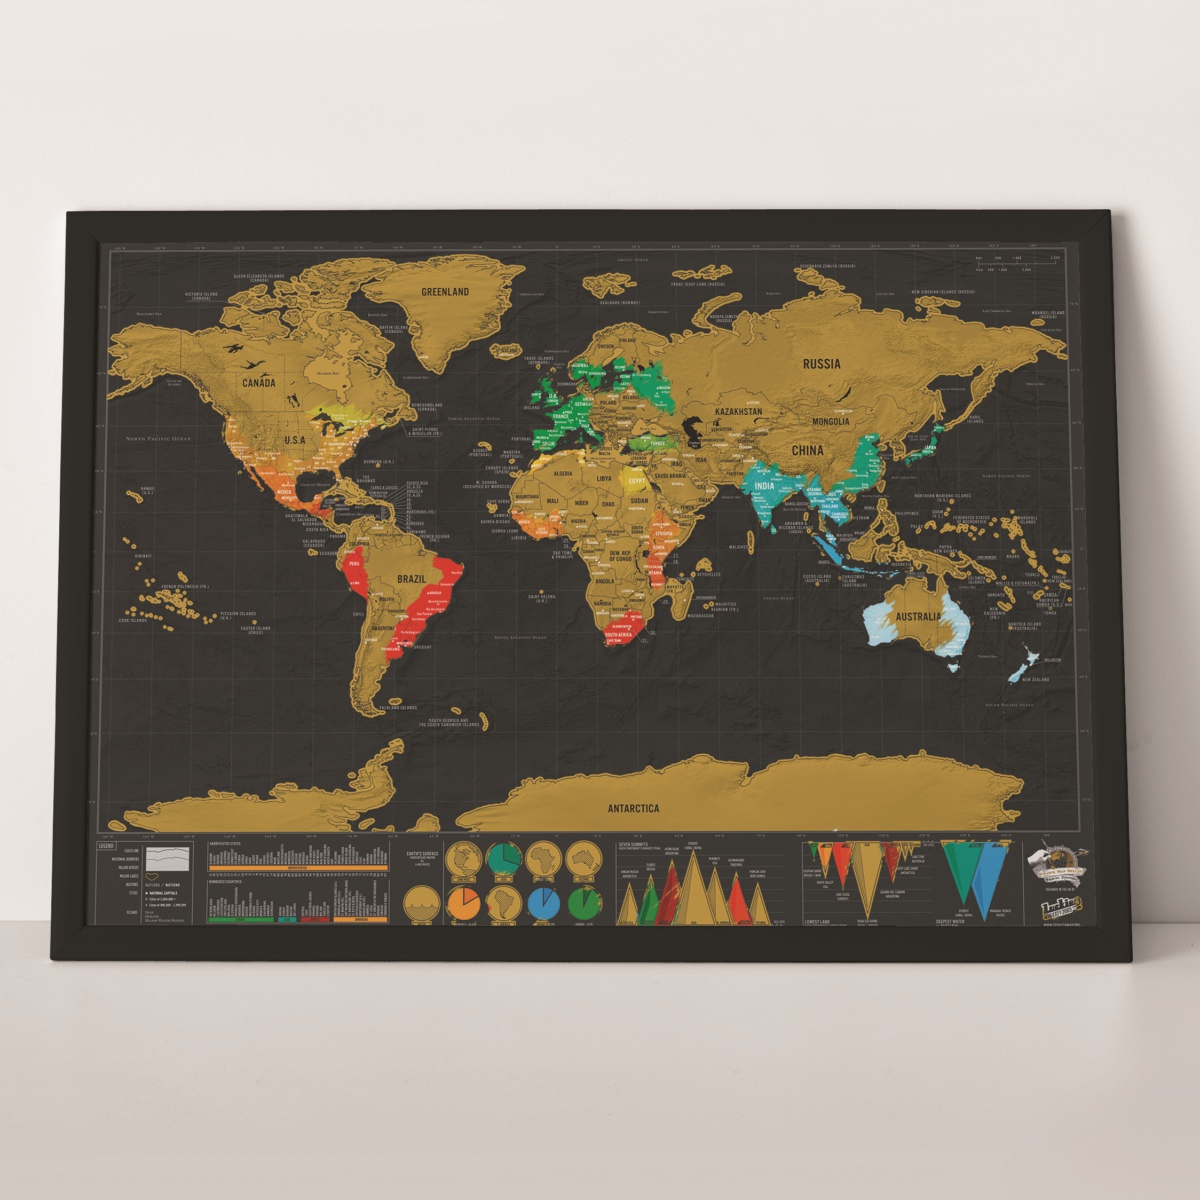 scratch-map-deluxe-travel-4